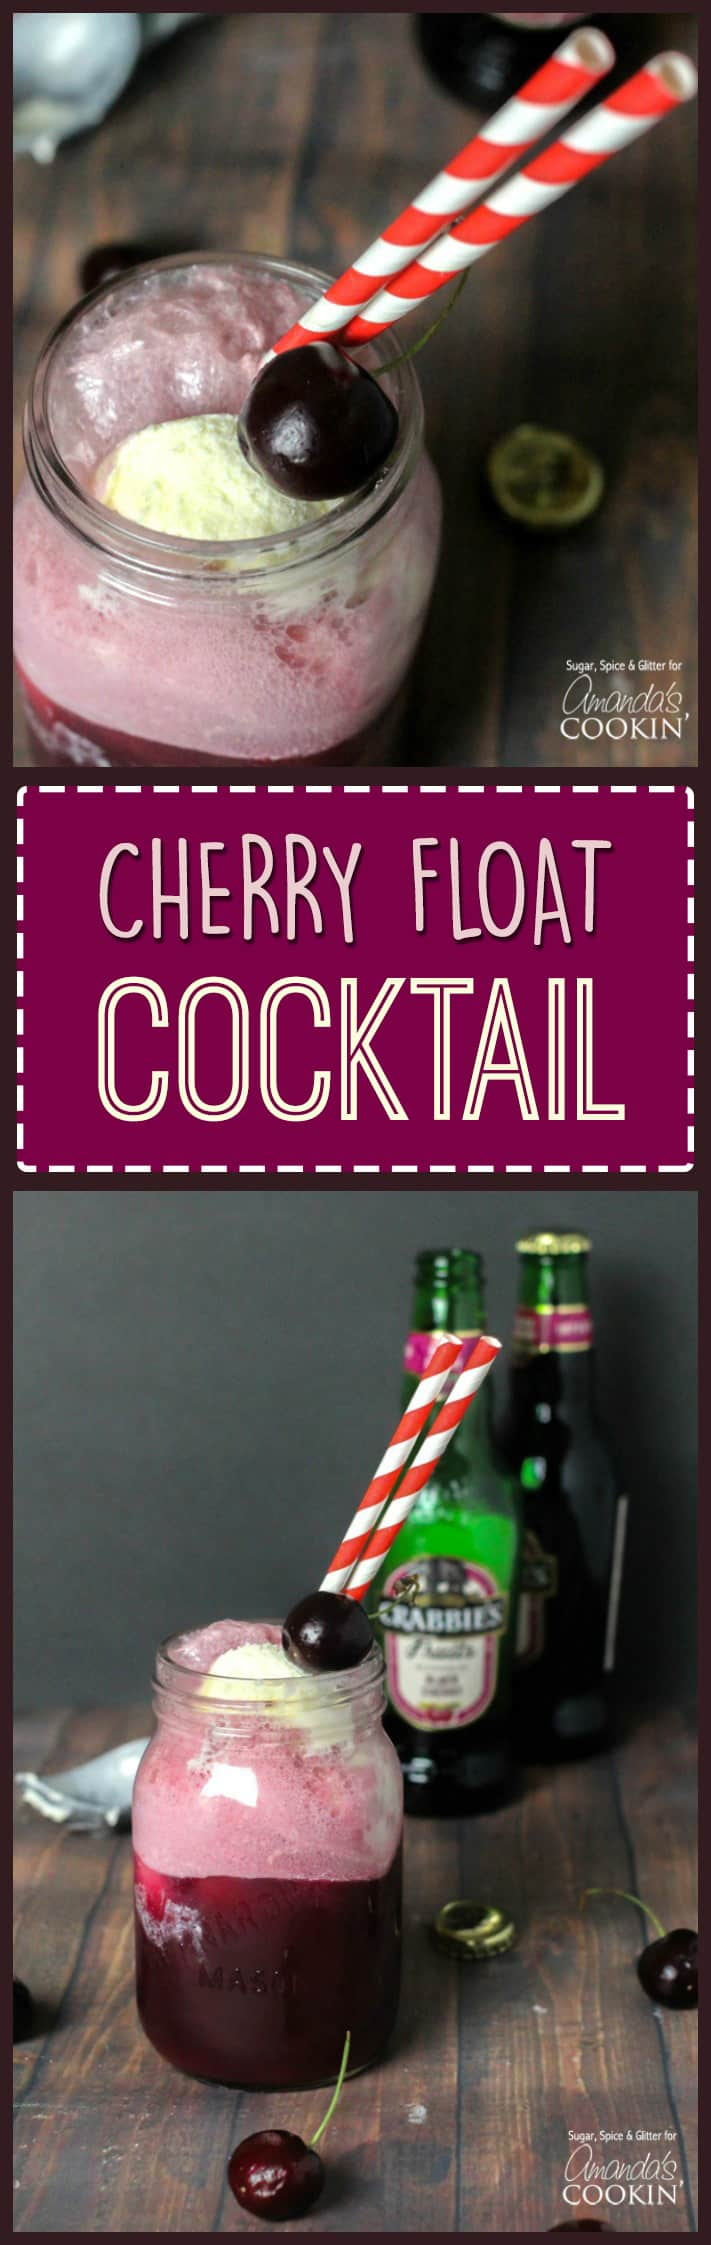 A photo of a cherry float cocktail.